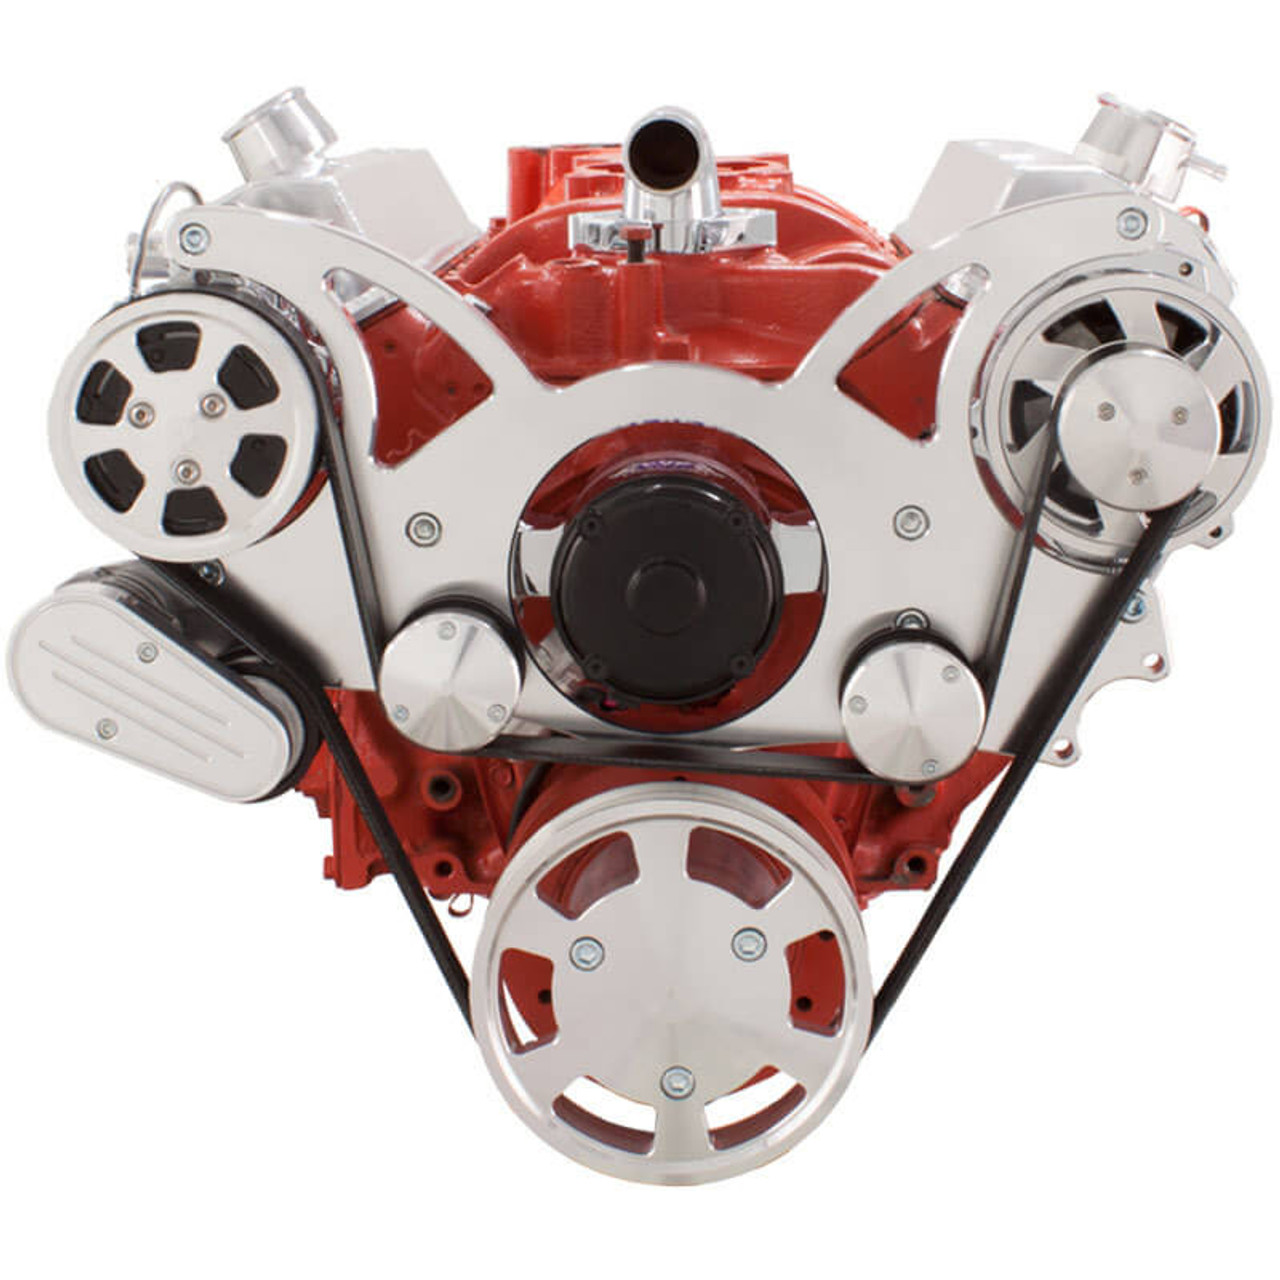 small resolution of  serpentine conversion kit for small block chevy 283 350 400 with ac on 283 externally regulated alternator